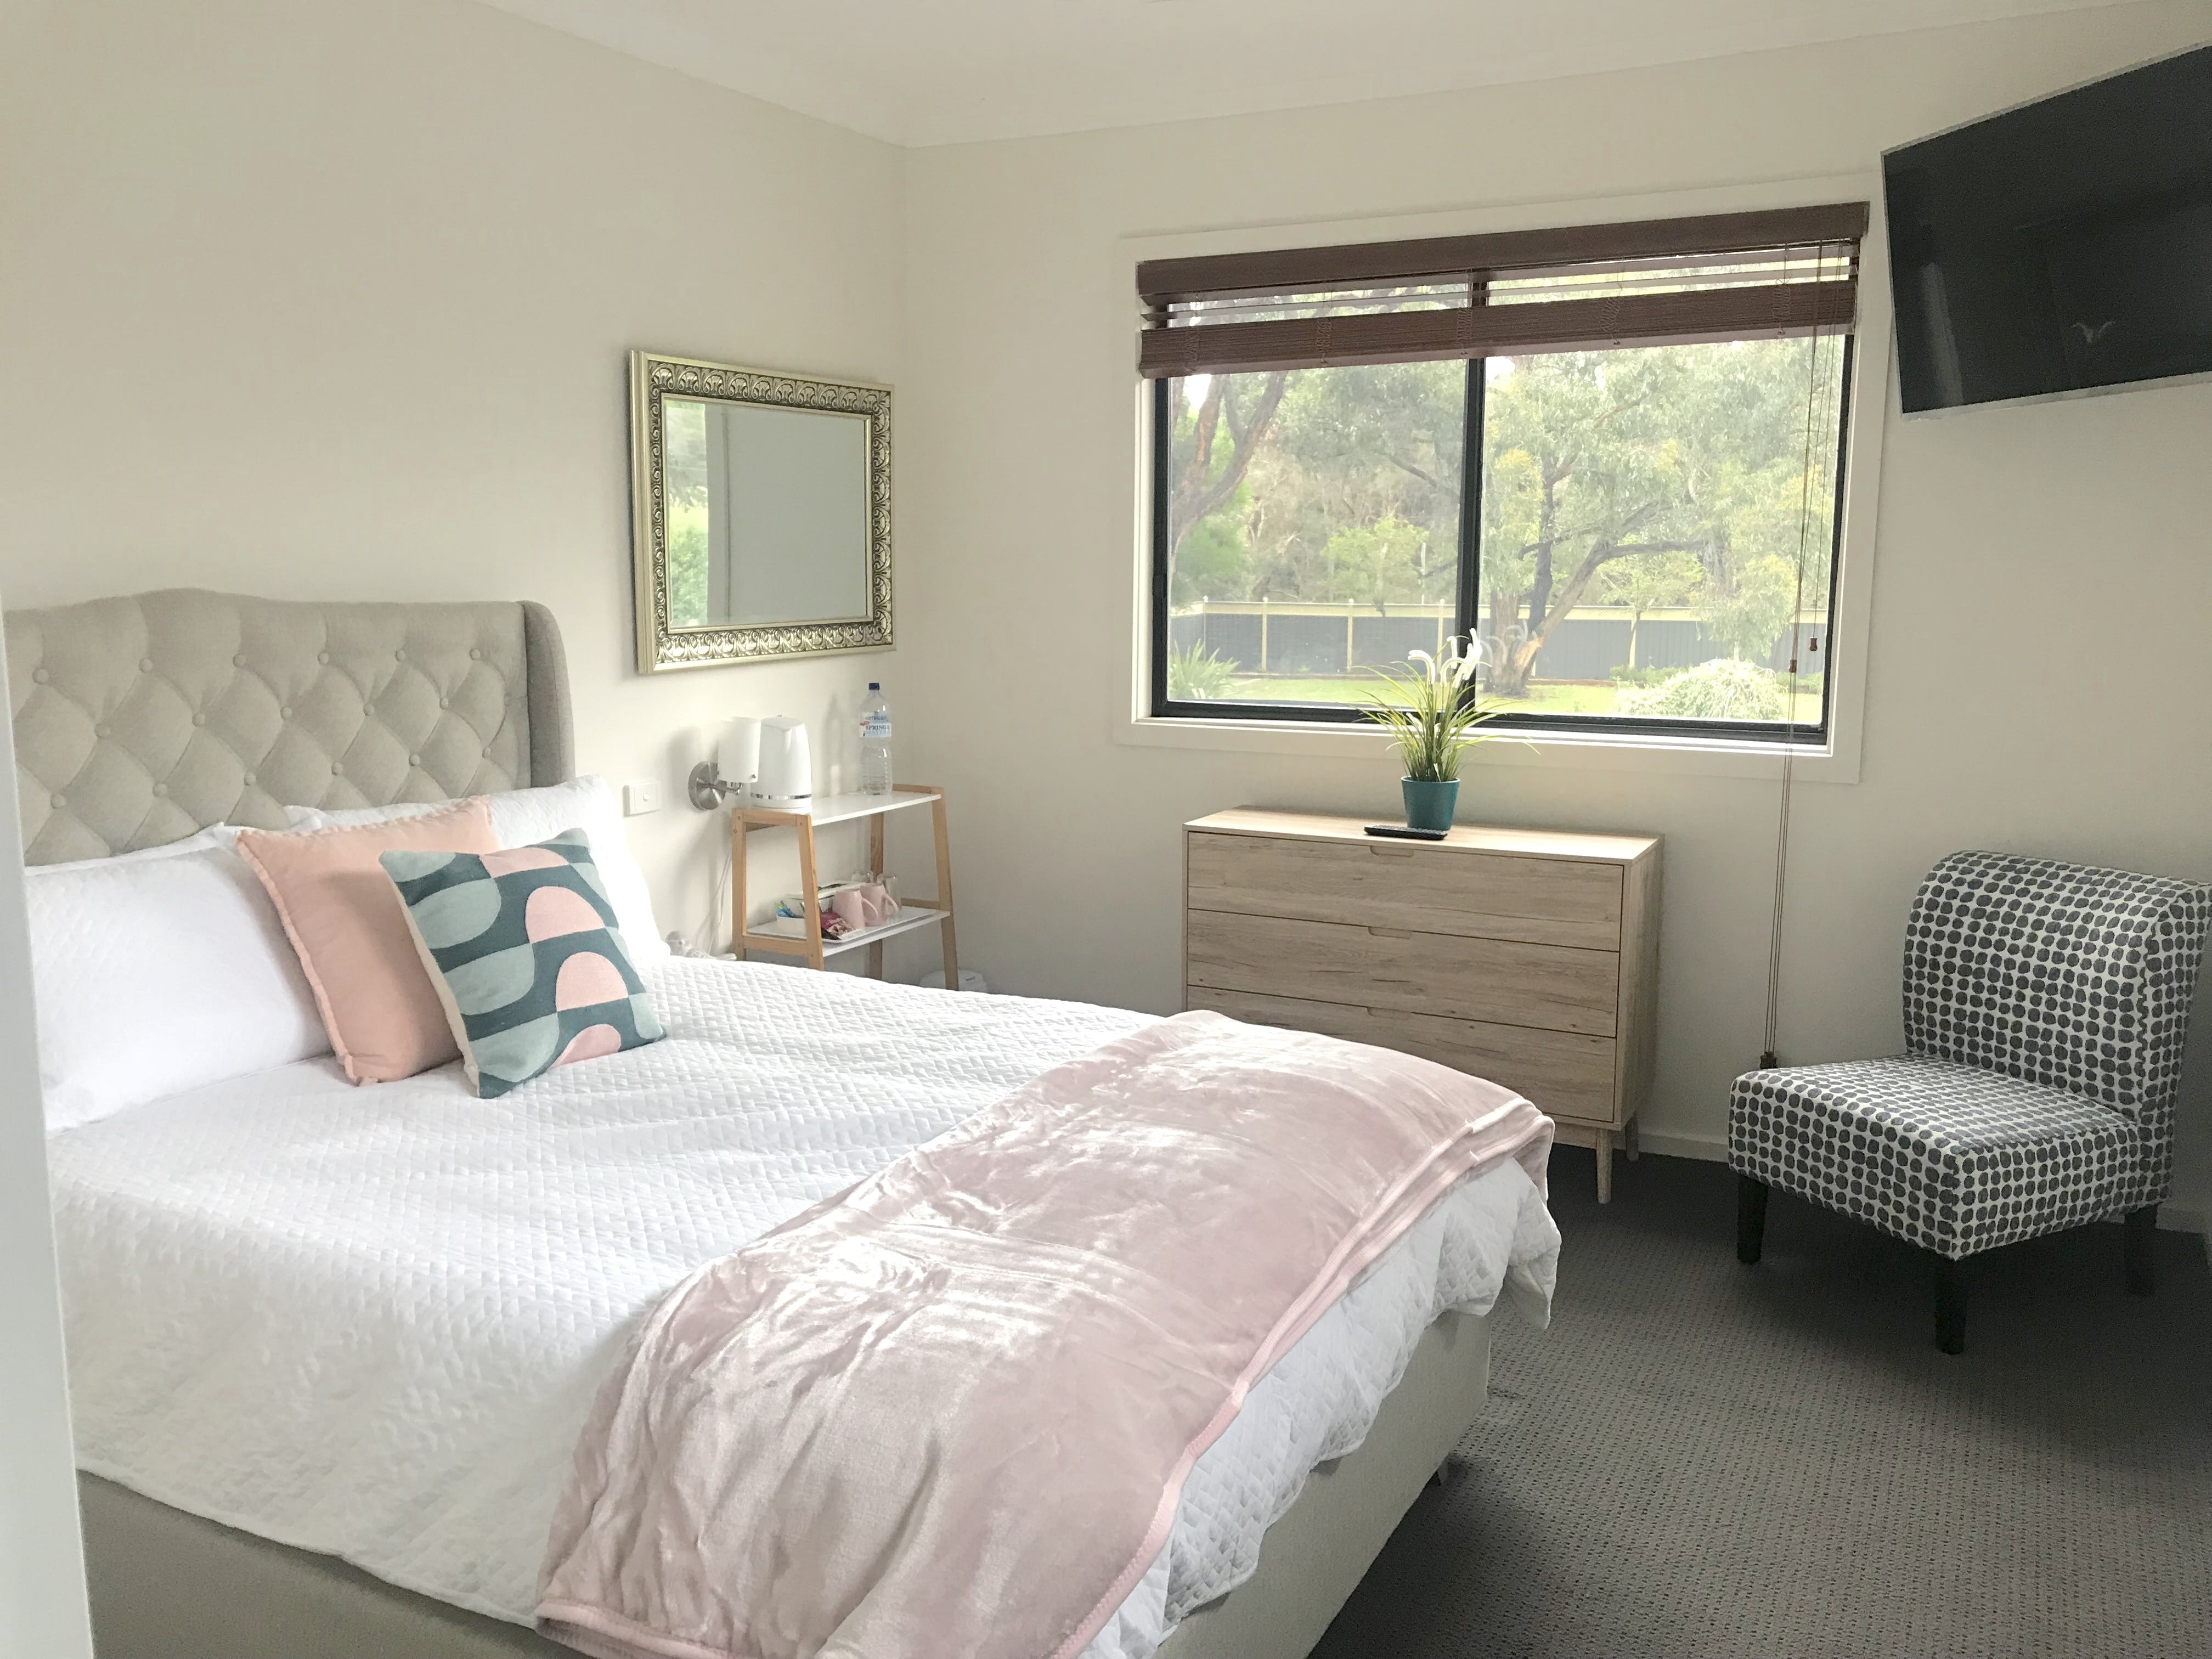 Room 1 - Deluxe Double overlooking gardens and paddock